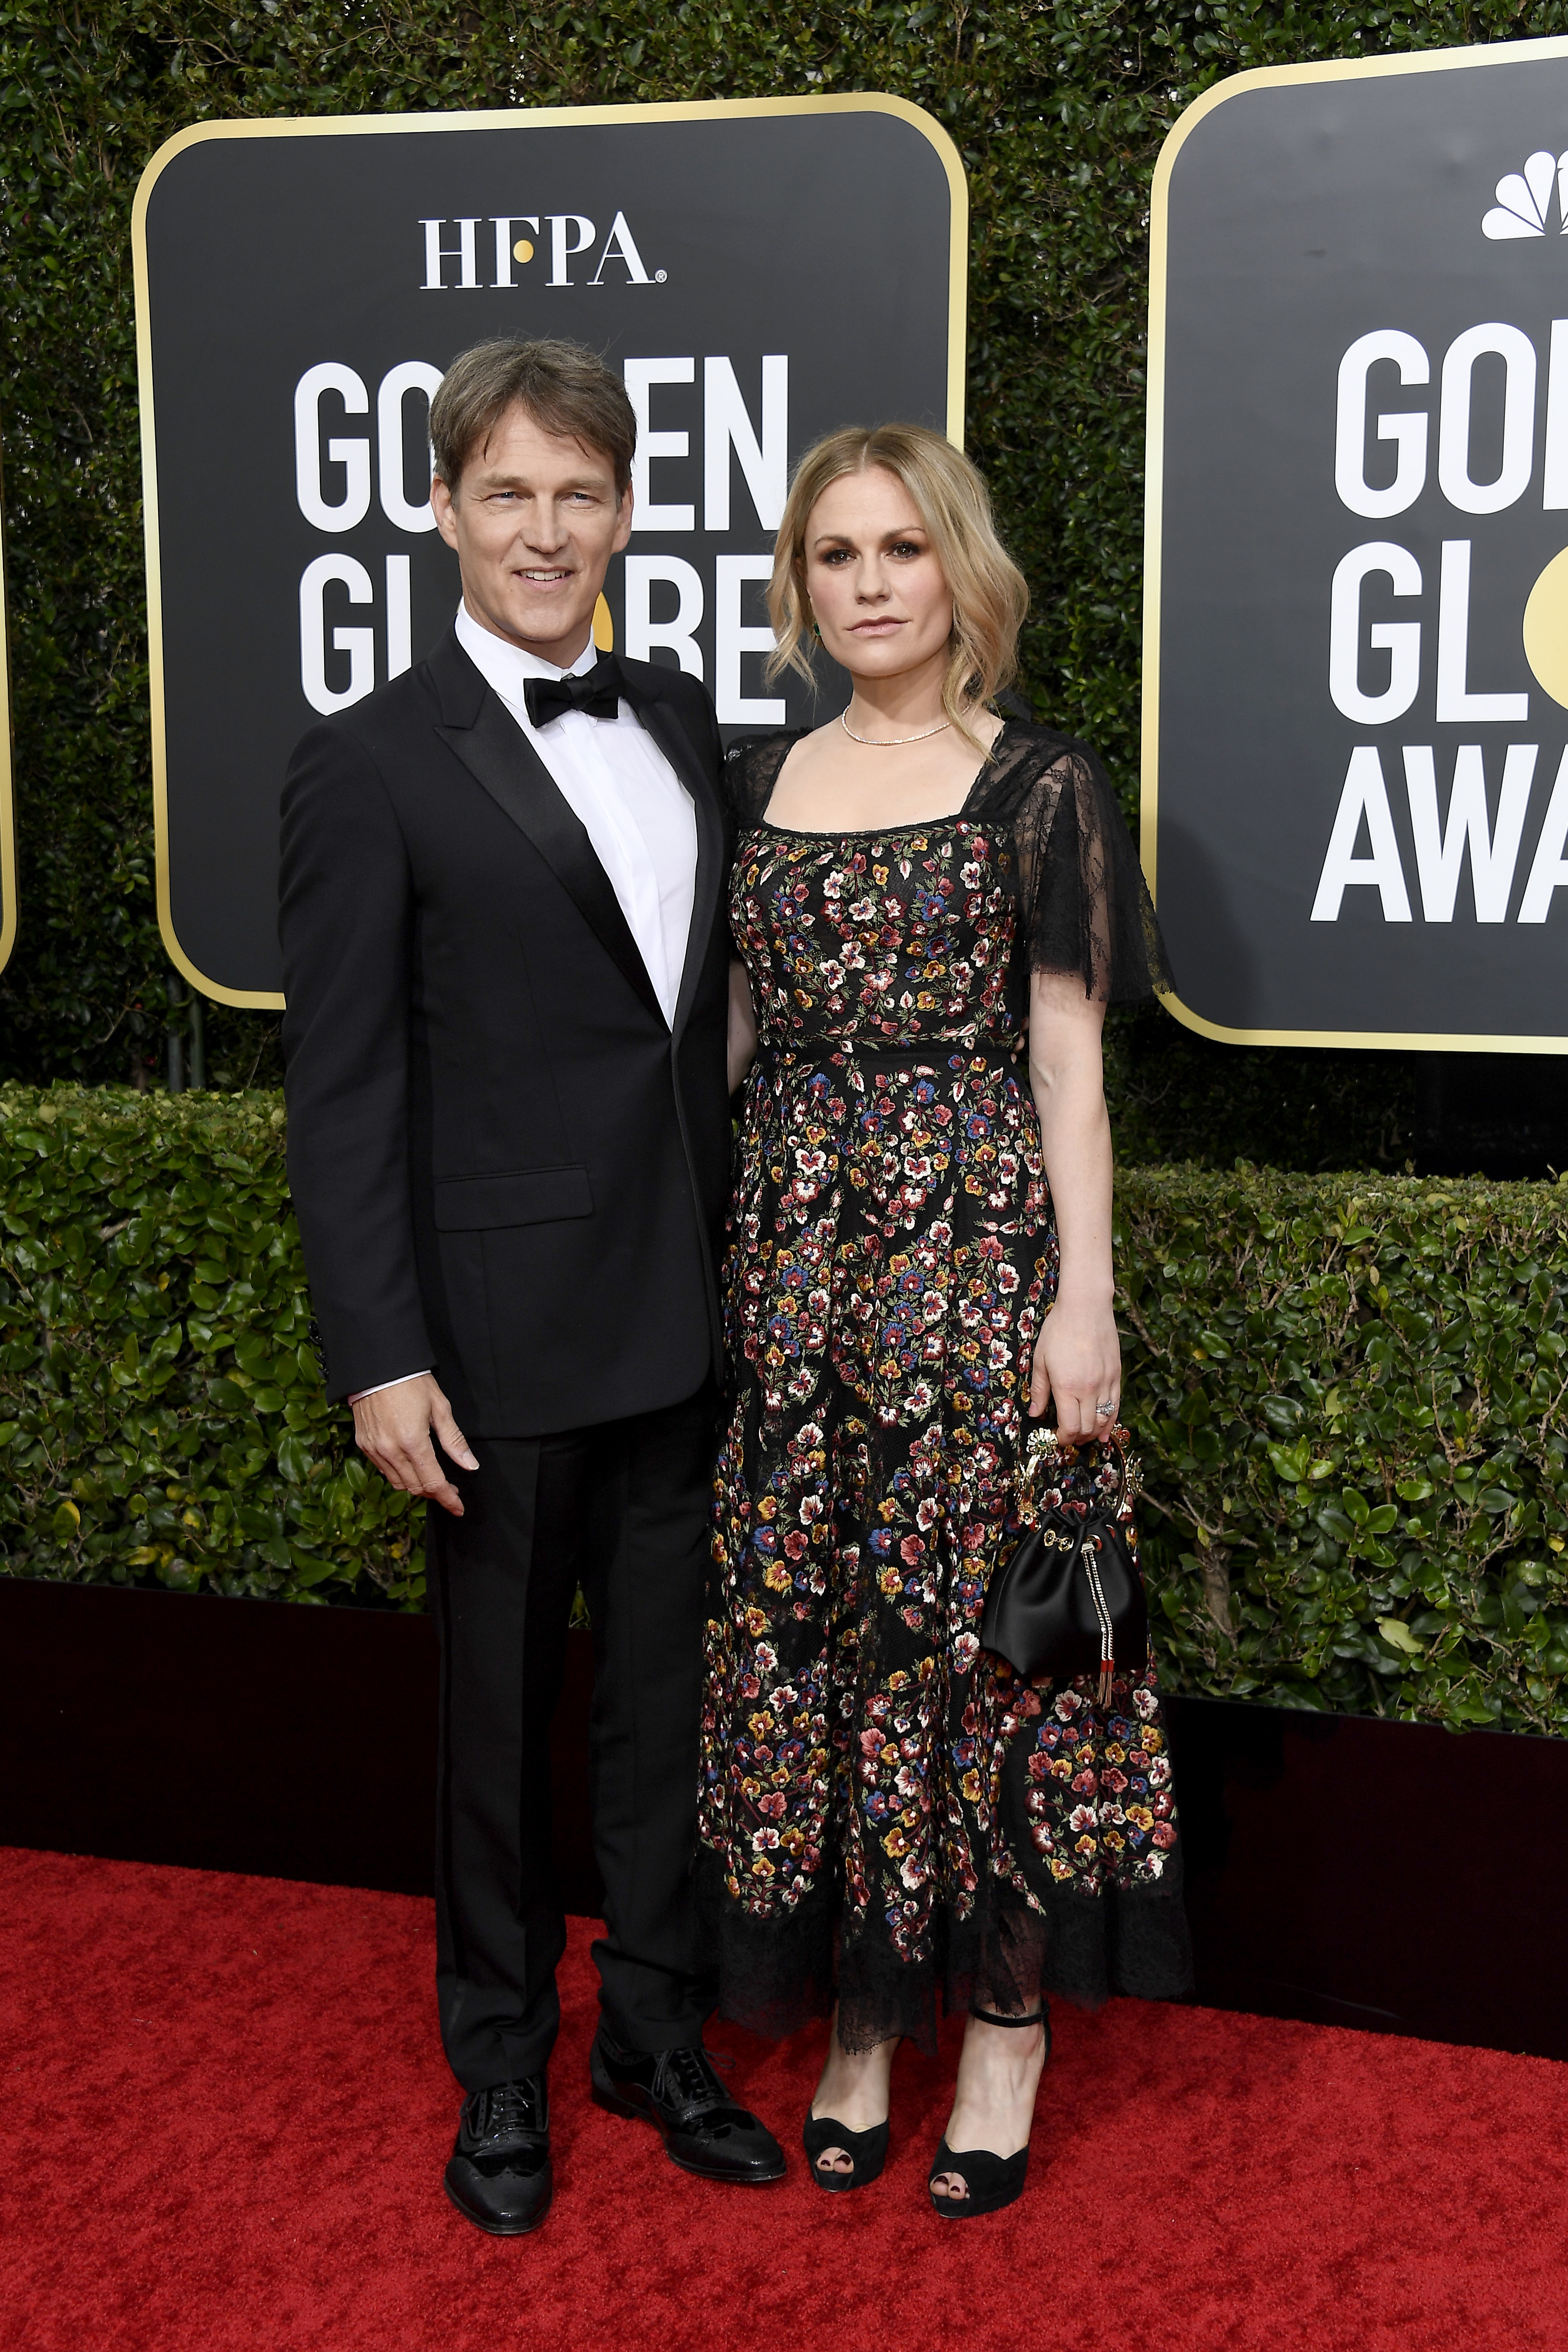 BEVERLY HILLS, CALIFORNIA - JANUARY 05: 77th ANNUAL GOLDEN GLOBE AWARDS -- Pictured: (l-r) Anna Paquin and Stephen Moyer arrive to the 77th Annual Golden Globe Awards held at the Beverly Hilton Hotel on January 5, 2020. -- (Photo by: Kevork Djansezian/NBC/NBCU Photo Bank via Getty Images)